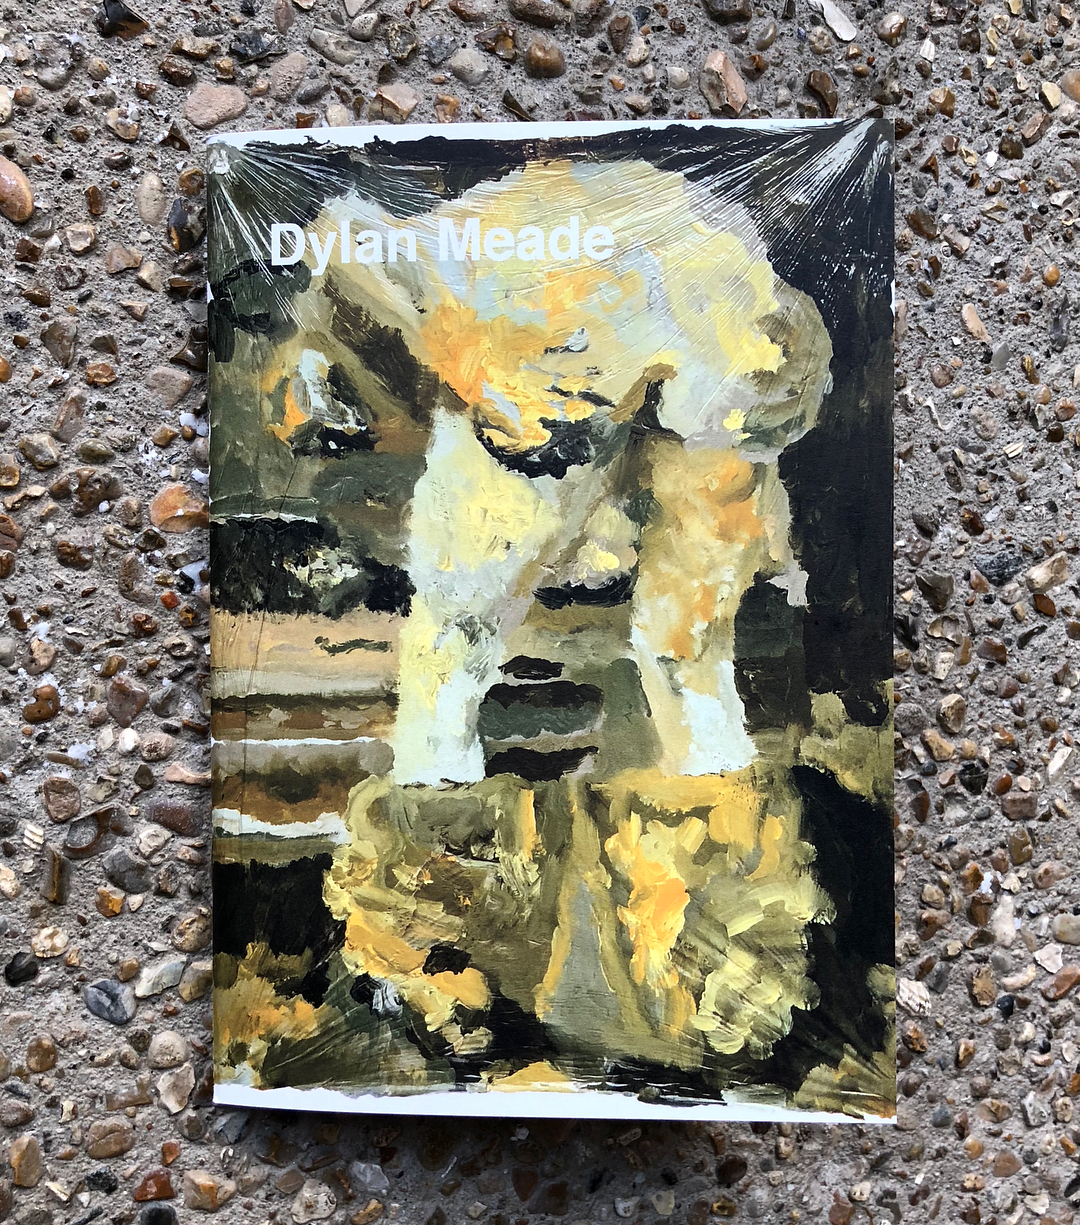 'Three Books' - Published in September 2018 by Pilot Press London and launched at Printed Matter inc.'s NY Art Book Fair, Three Books is an artists monograph containing a selection of short prose, memoir, painting and photography.£10.Available to order through Pilot Press London or Printed Matter, inc NY.